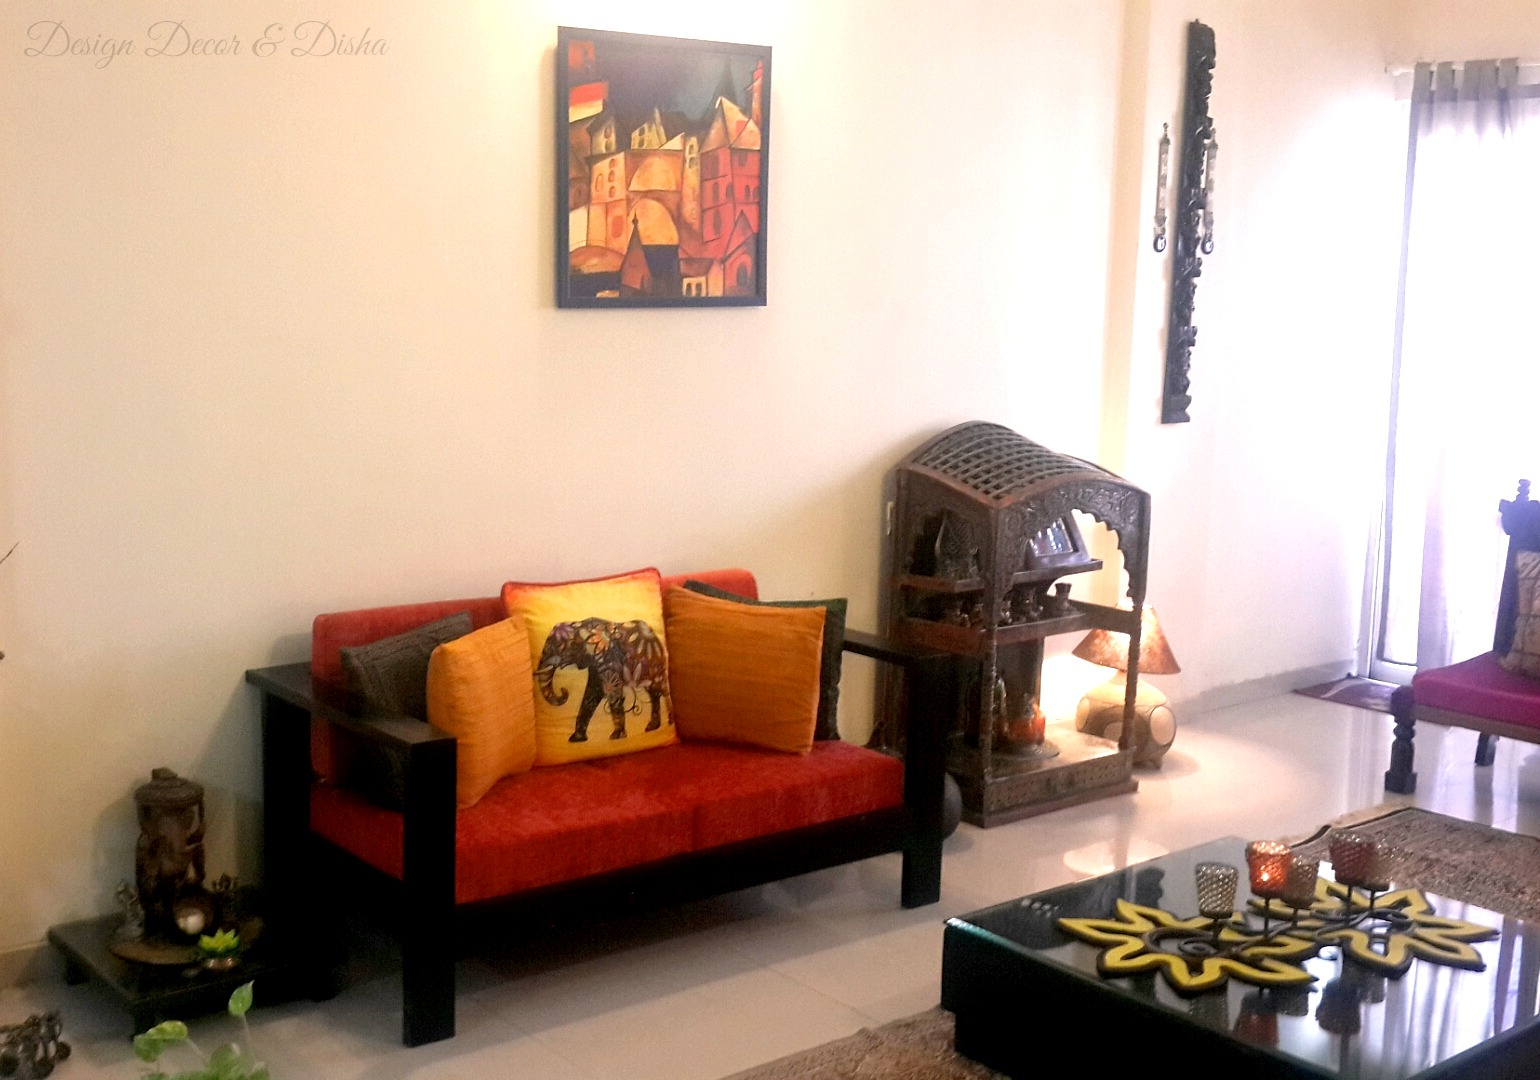 An Indian Design & Decor Blog: Home